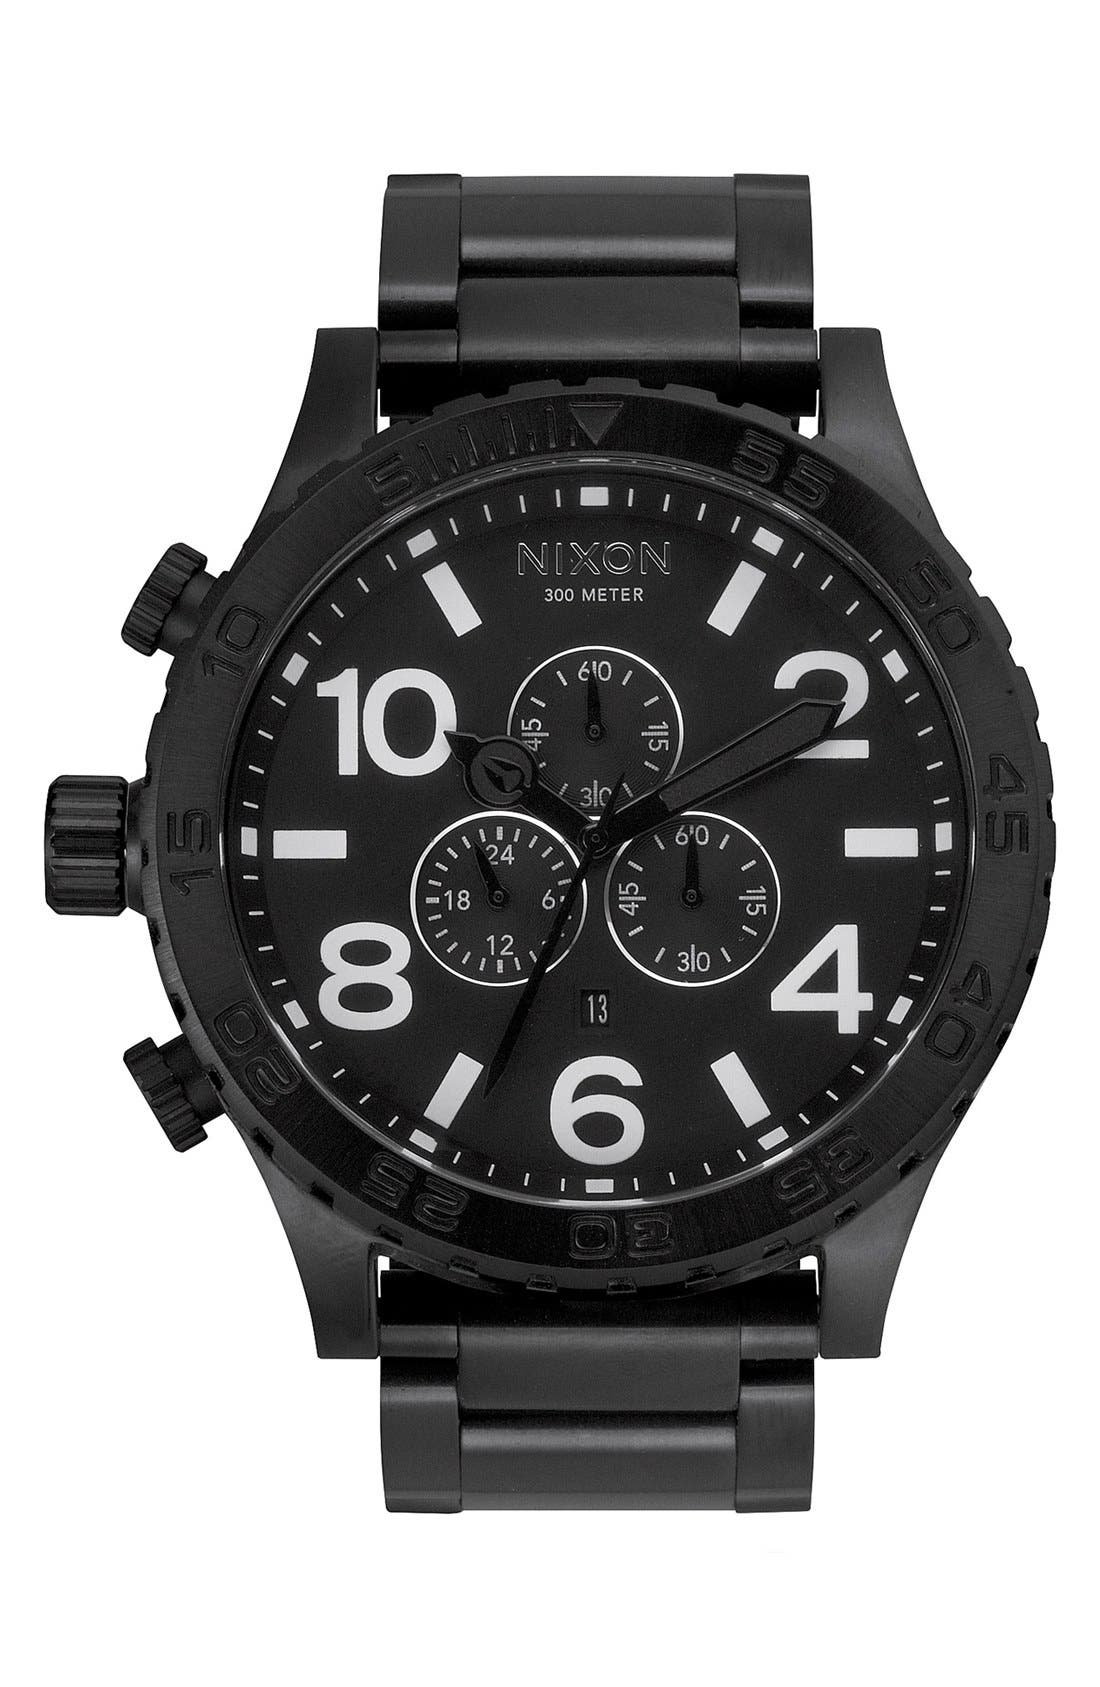 Main Image - Nixon 'The 51-30 Chrono' Watch, 51mm